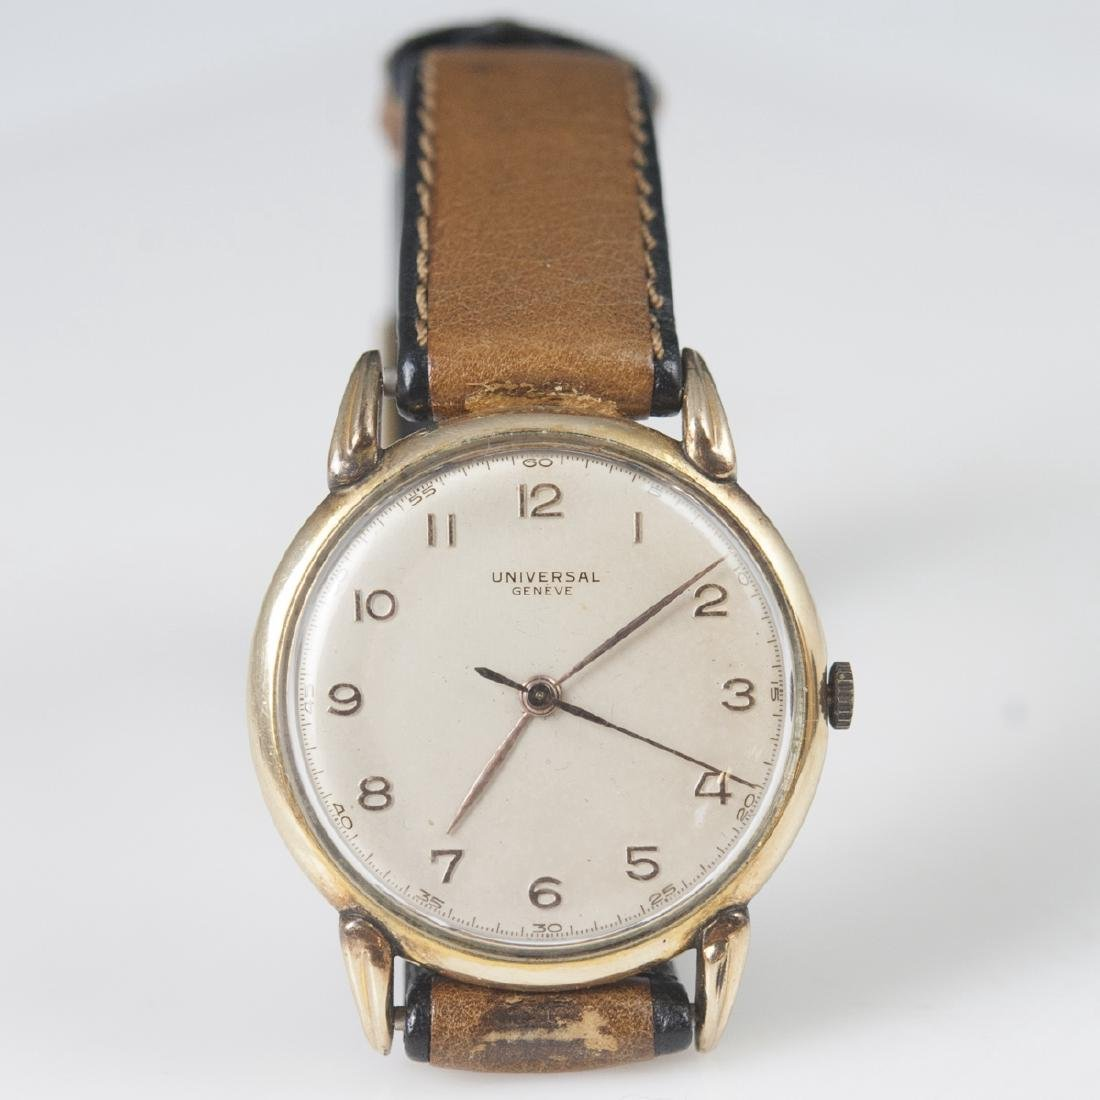 Vintage Universal Geneve Gold Plated Watch